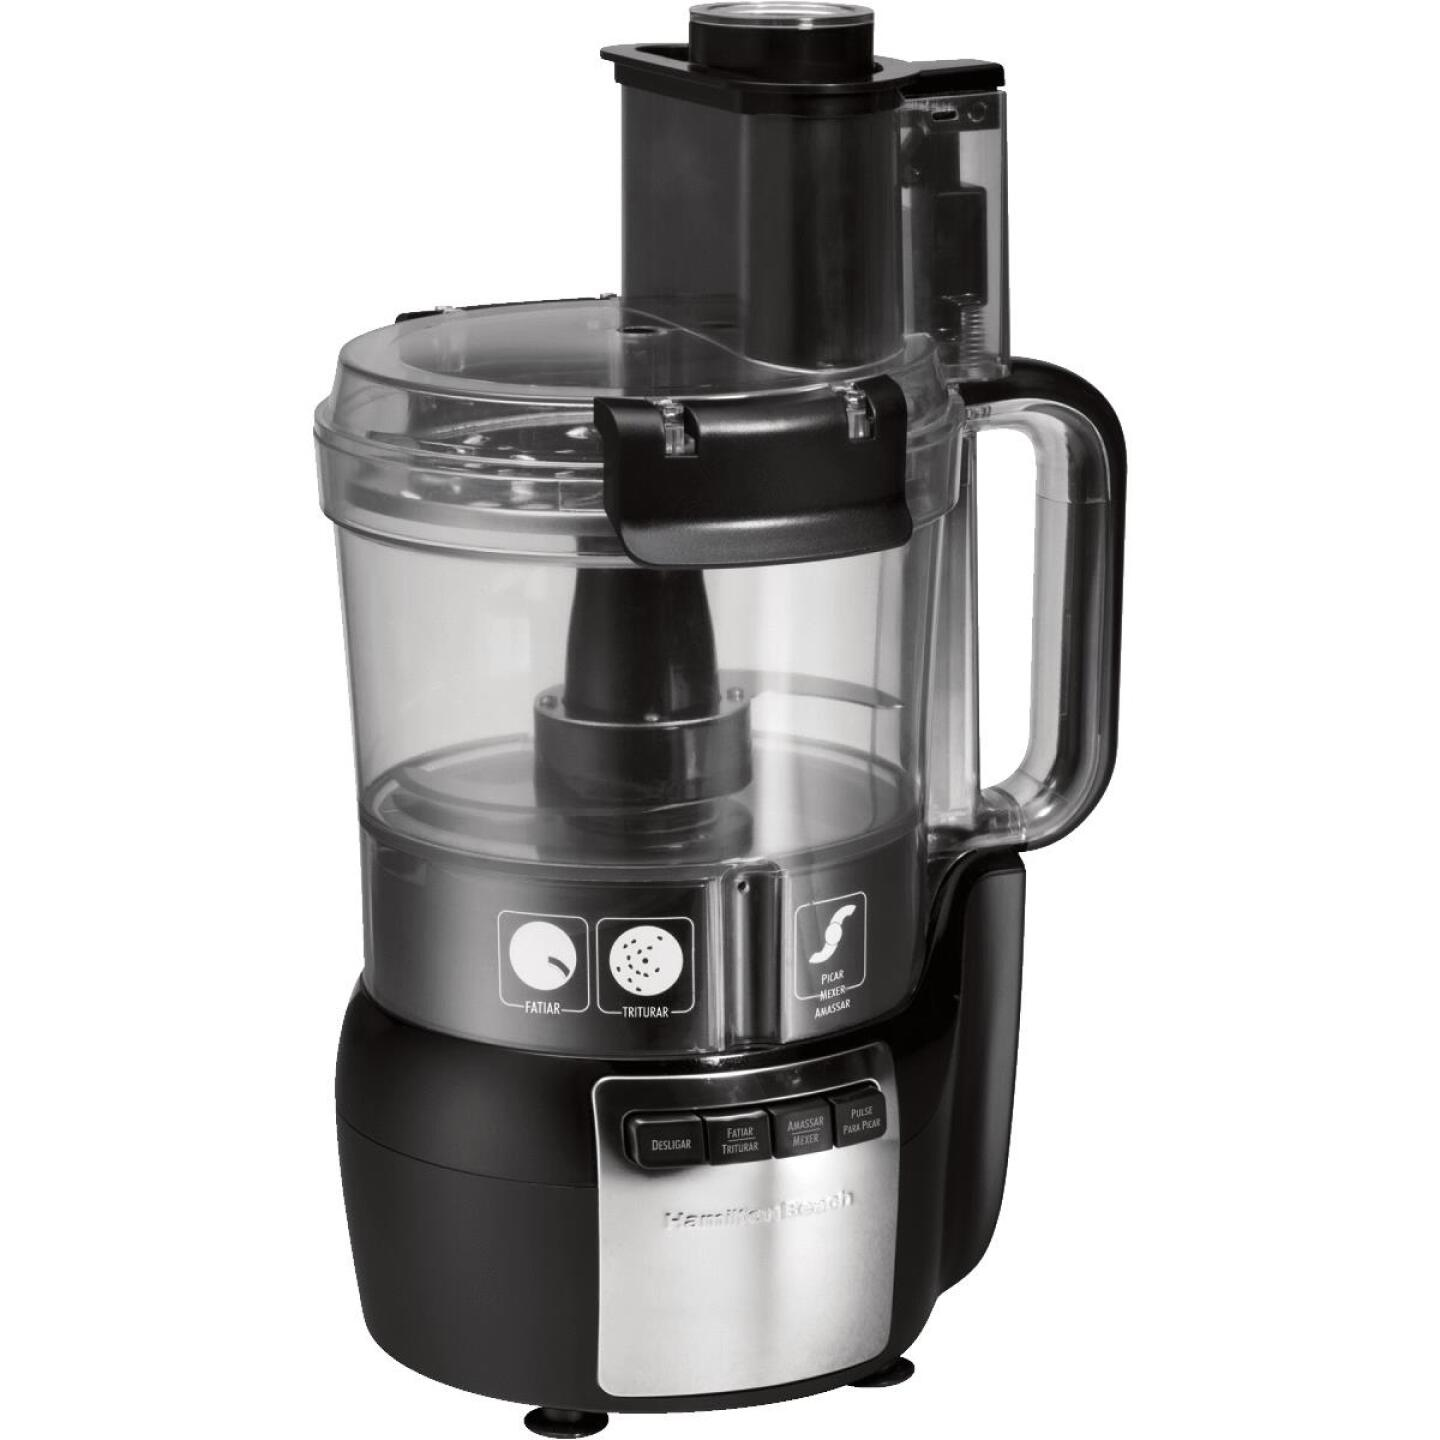 Hamilton Beach Stack & Snap 10-Cup Black Food Processor with Big Mouth Image 2